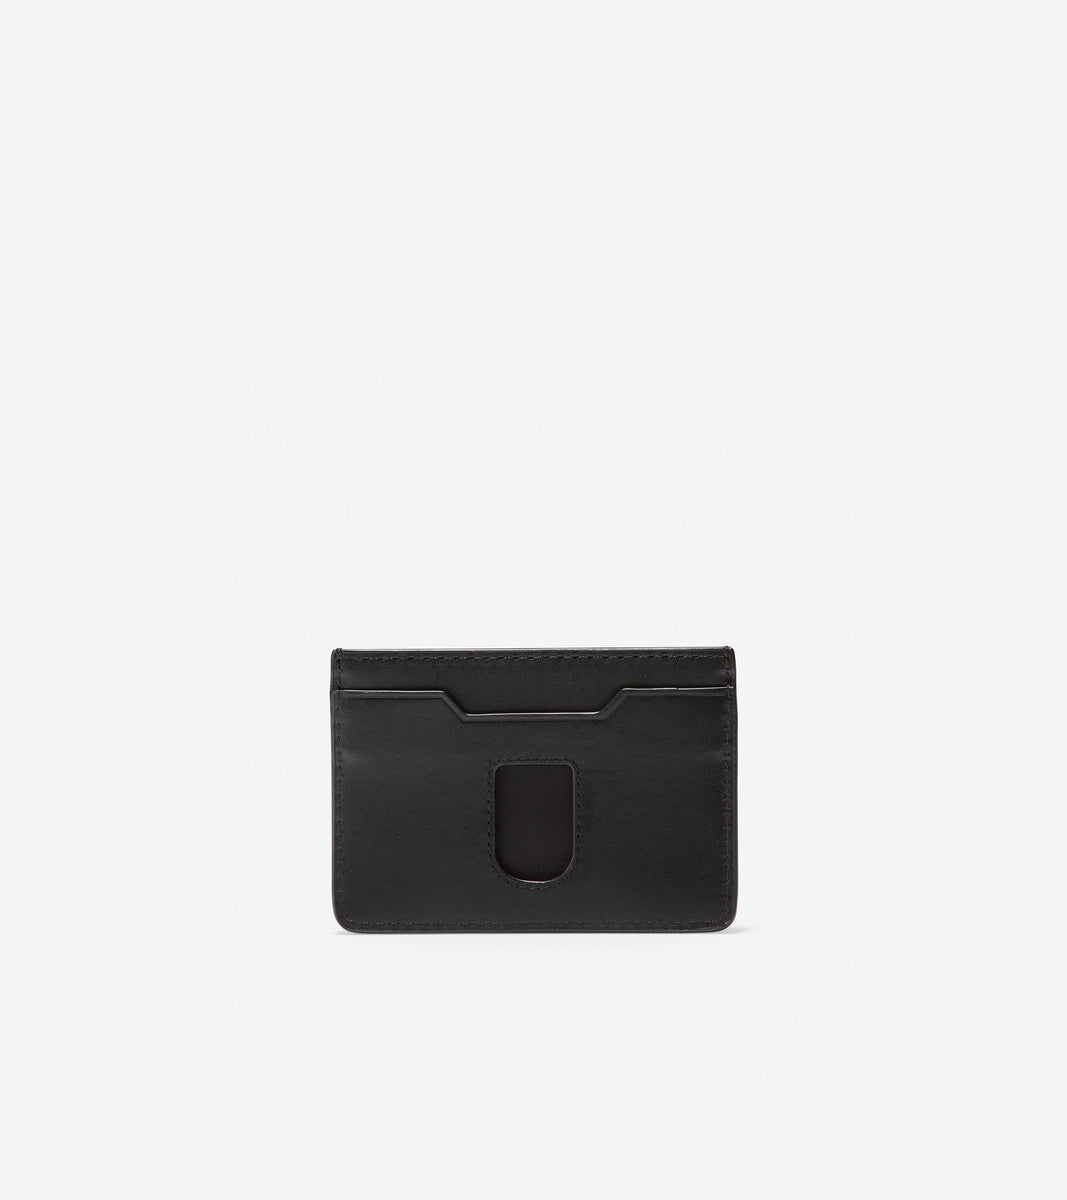 GRANDSERIES Leather Card Case